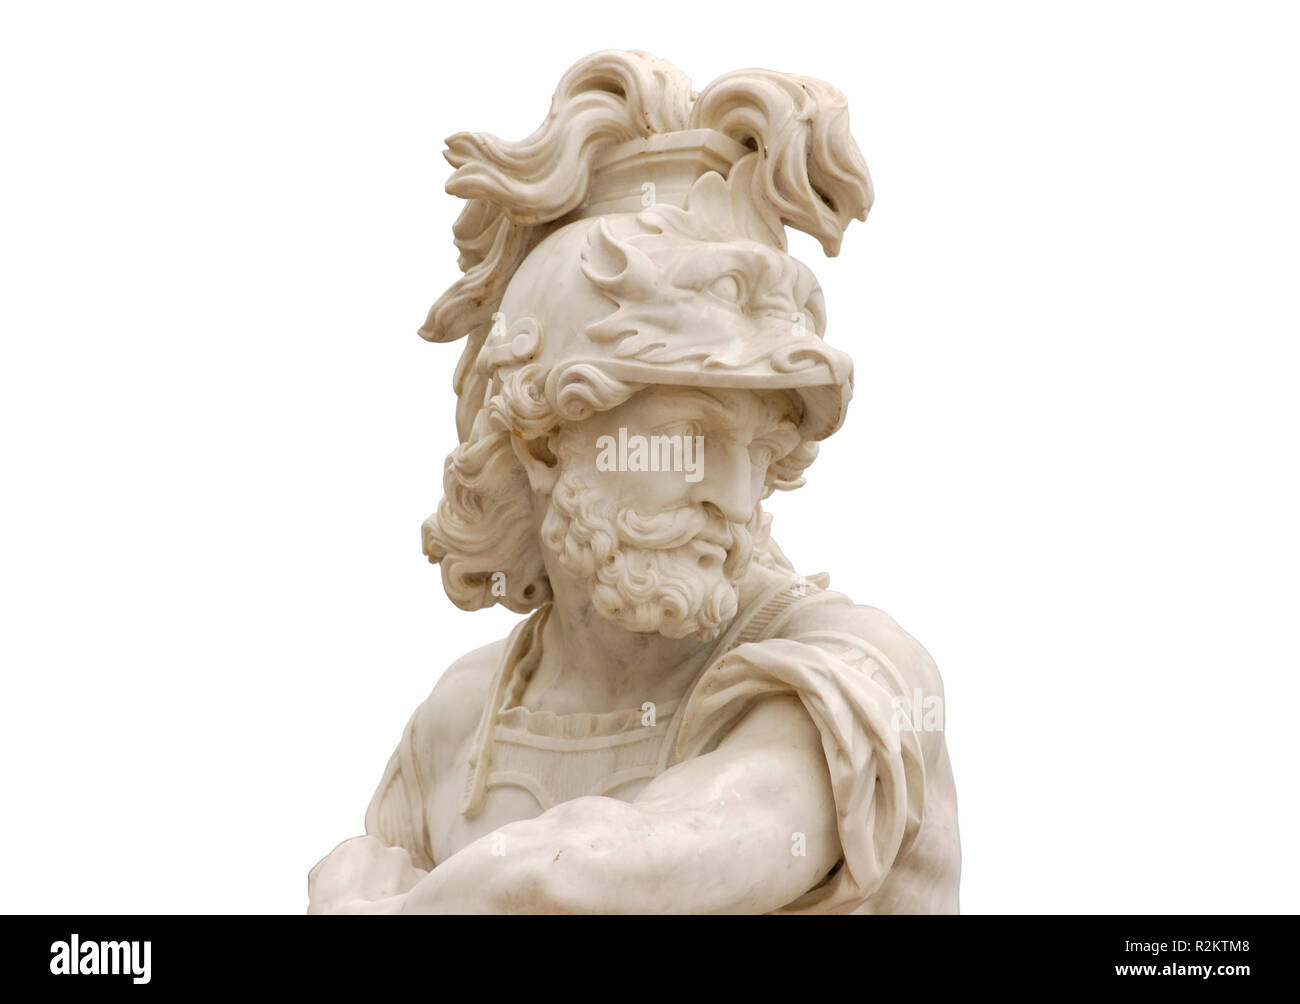 antique statue of a warrior - Stock Image